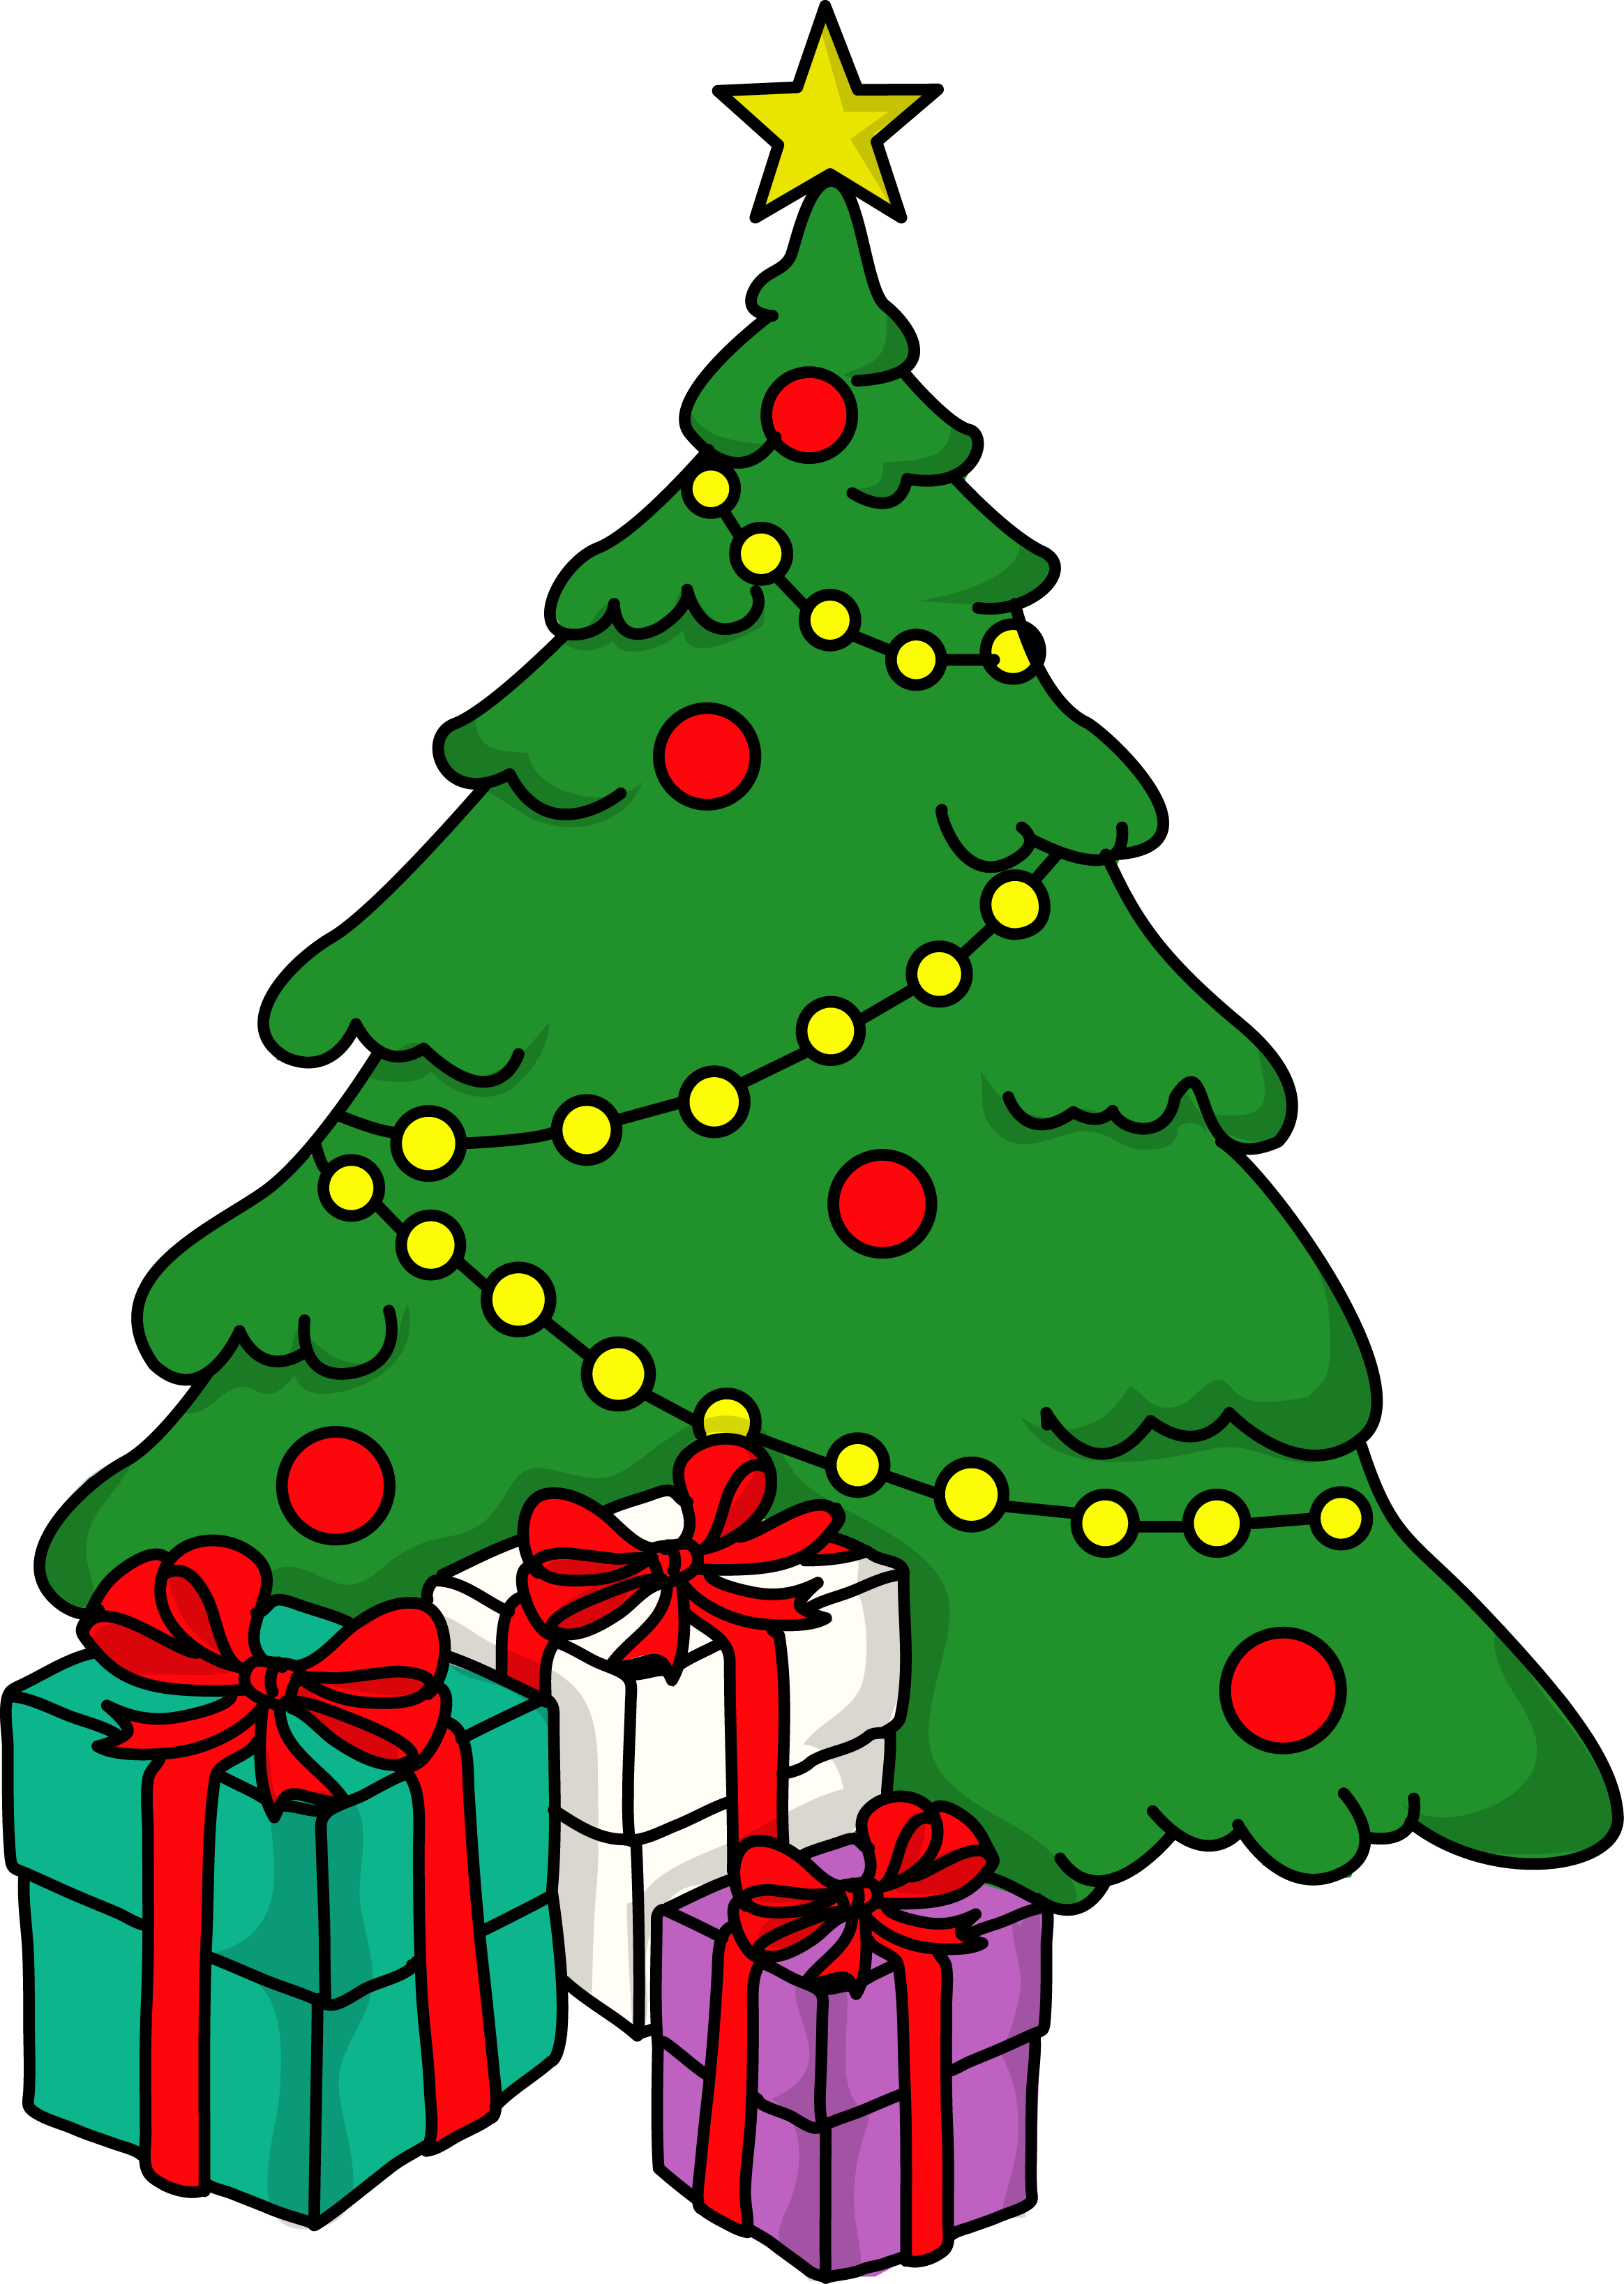 Free Celebrate Christmas Cliparts, Download Free Clip Art, Free Clip.